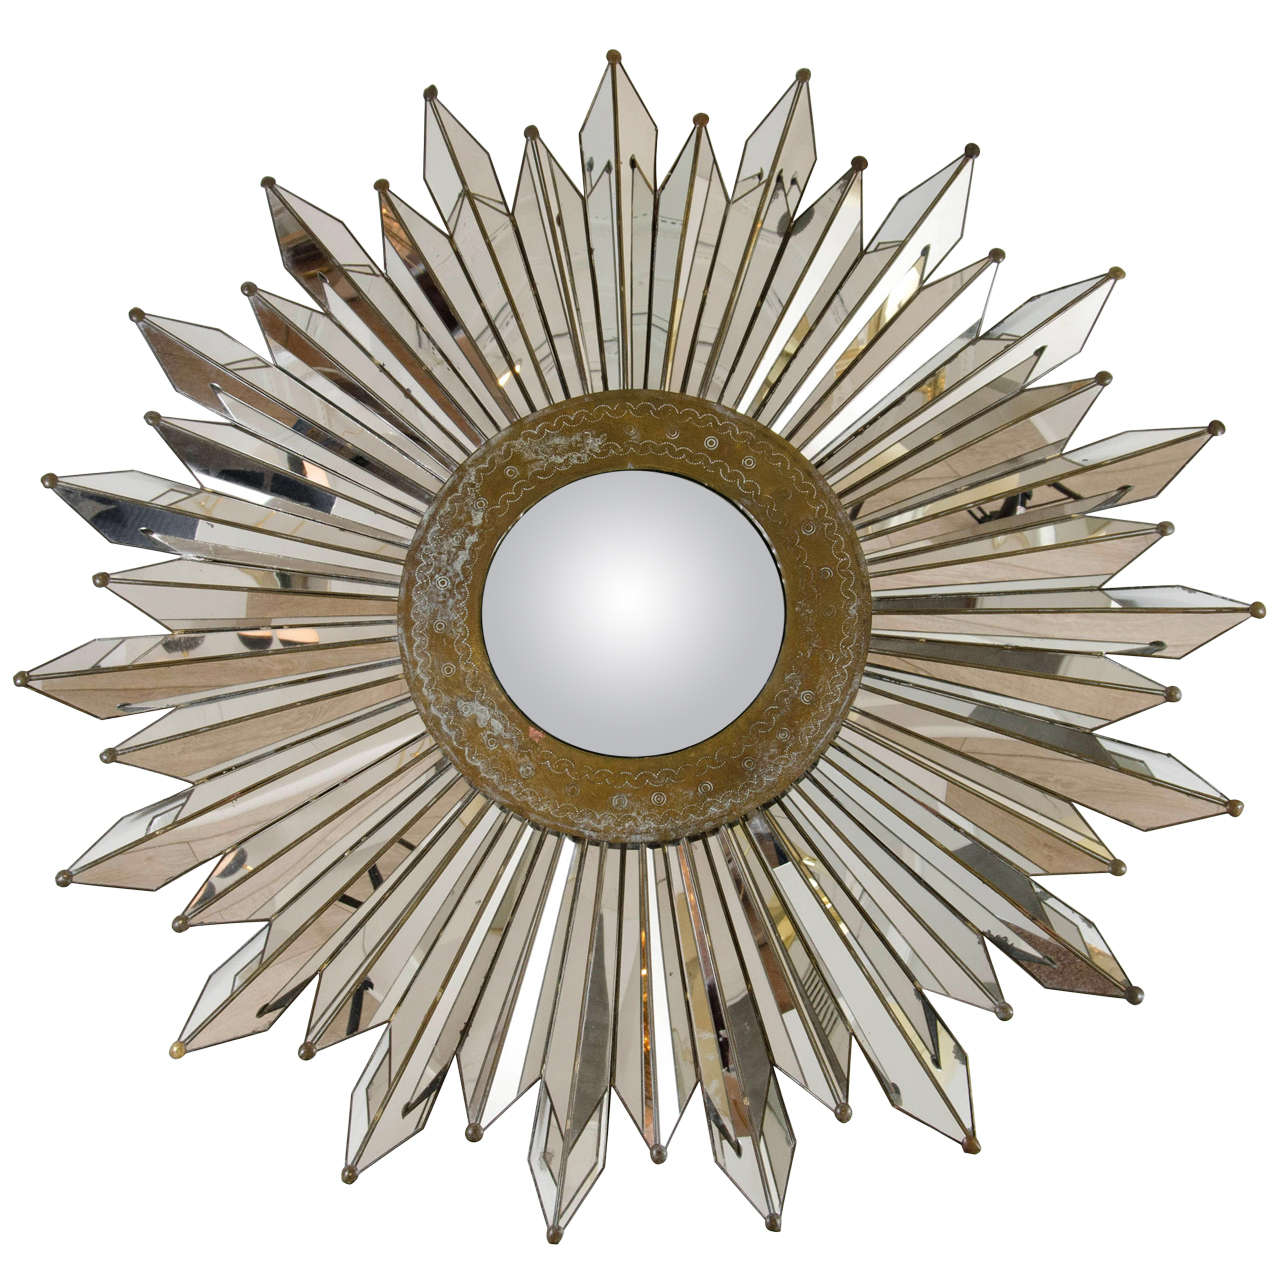 Home Depot Starburst Mirror | Gold Sunburst Mirror | Martha Stewart Sunburst Mirror